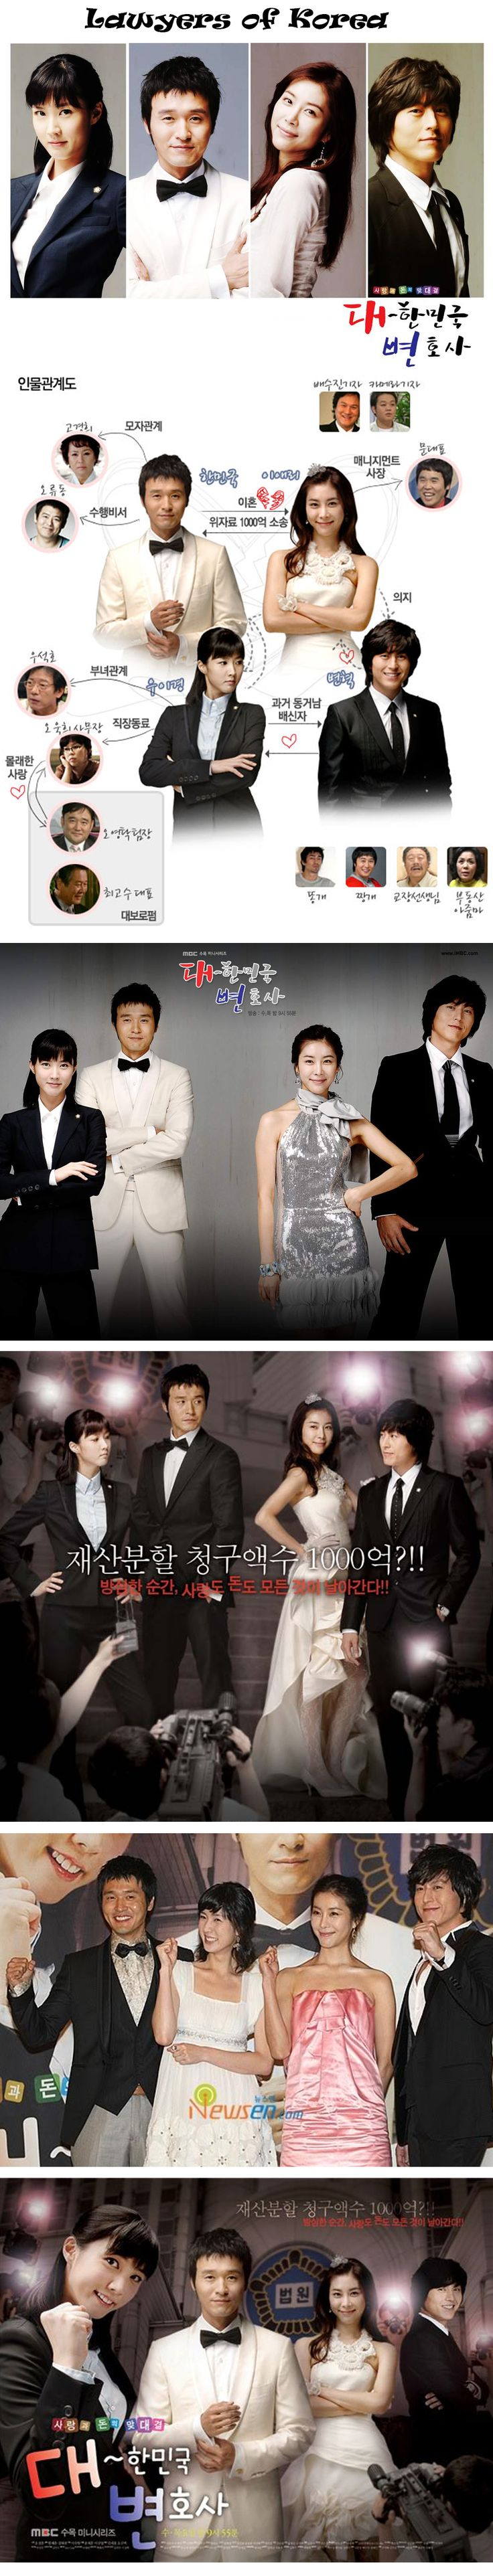 Lawyers of Korea (대한민국 변호사) also known as The Lawyers of The Great Republic Korea - kdrama 2008 - 16 episodes - Lee Sung Jae / Lee Soo Kyung / Ryu Soo Young / Han Eun Jung